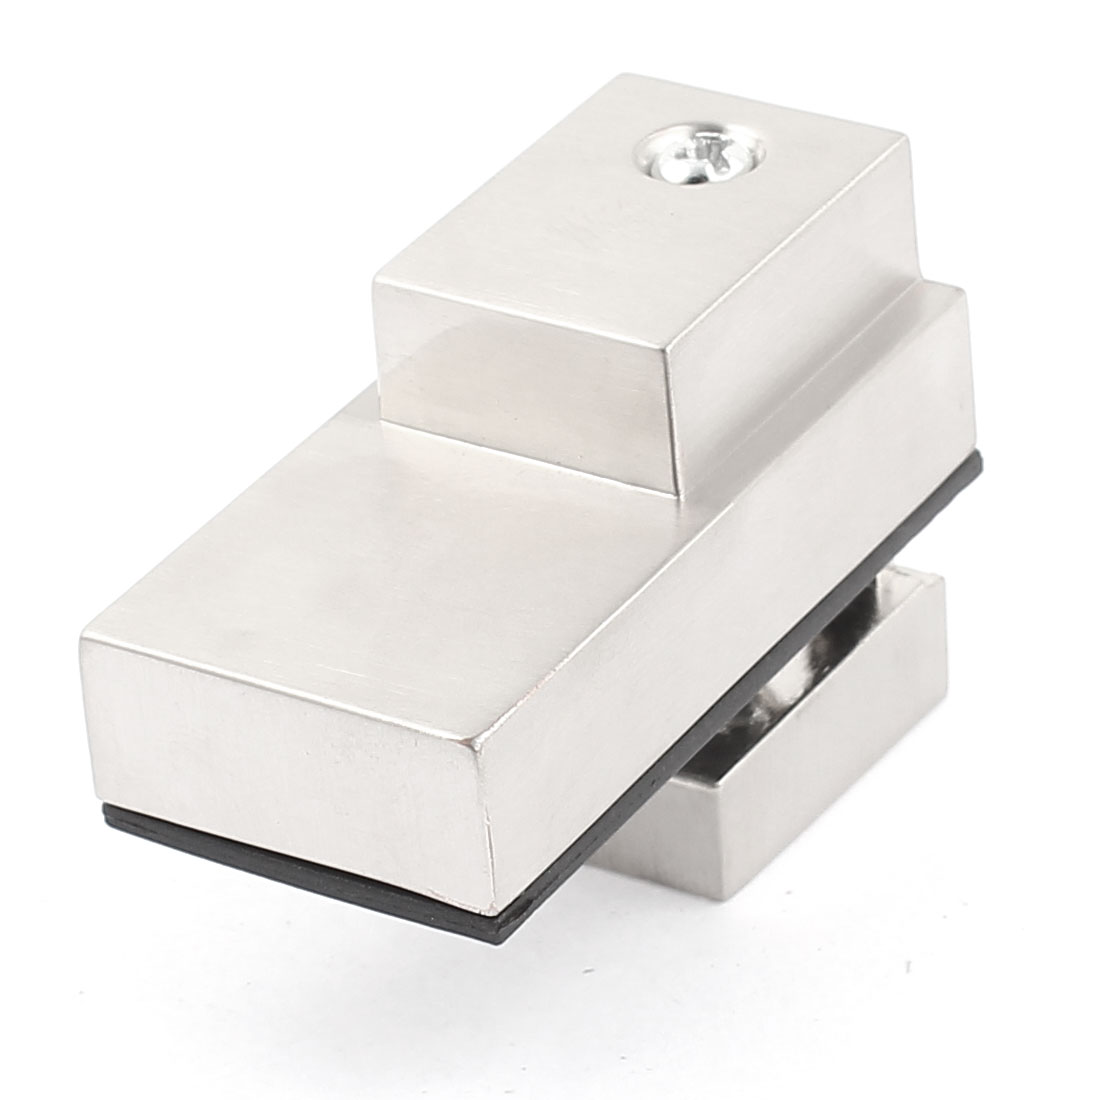 5mm-20mm Thickness Satin Nickel Adjustable Glass Shelf Clip Clamp